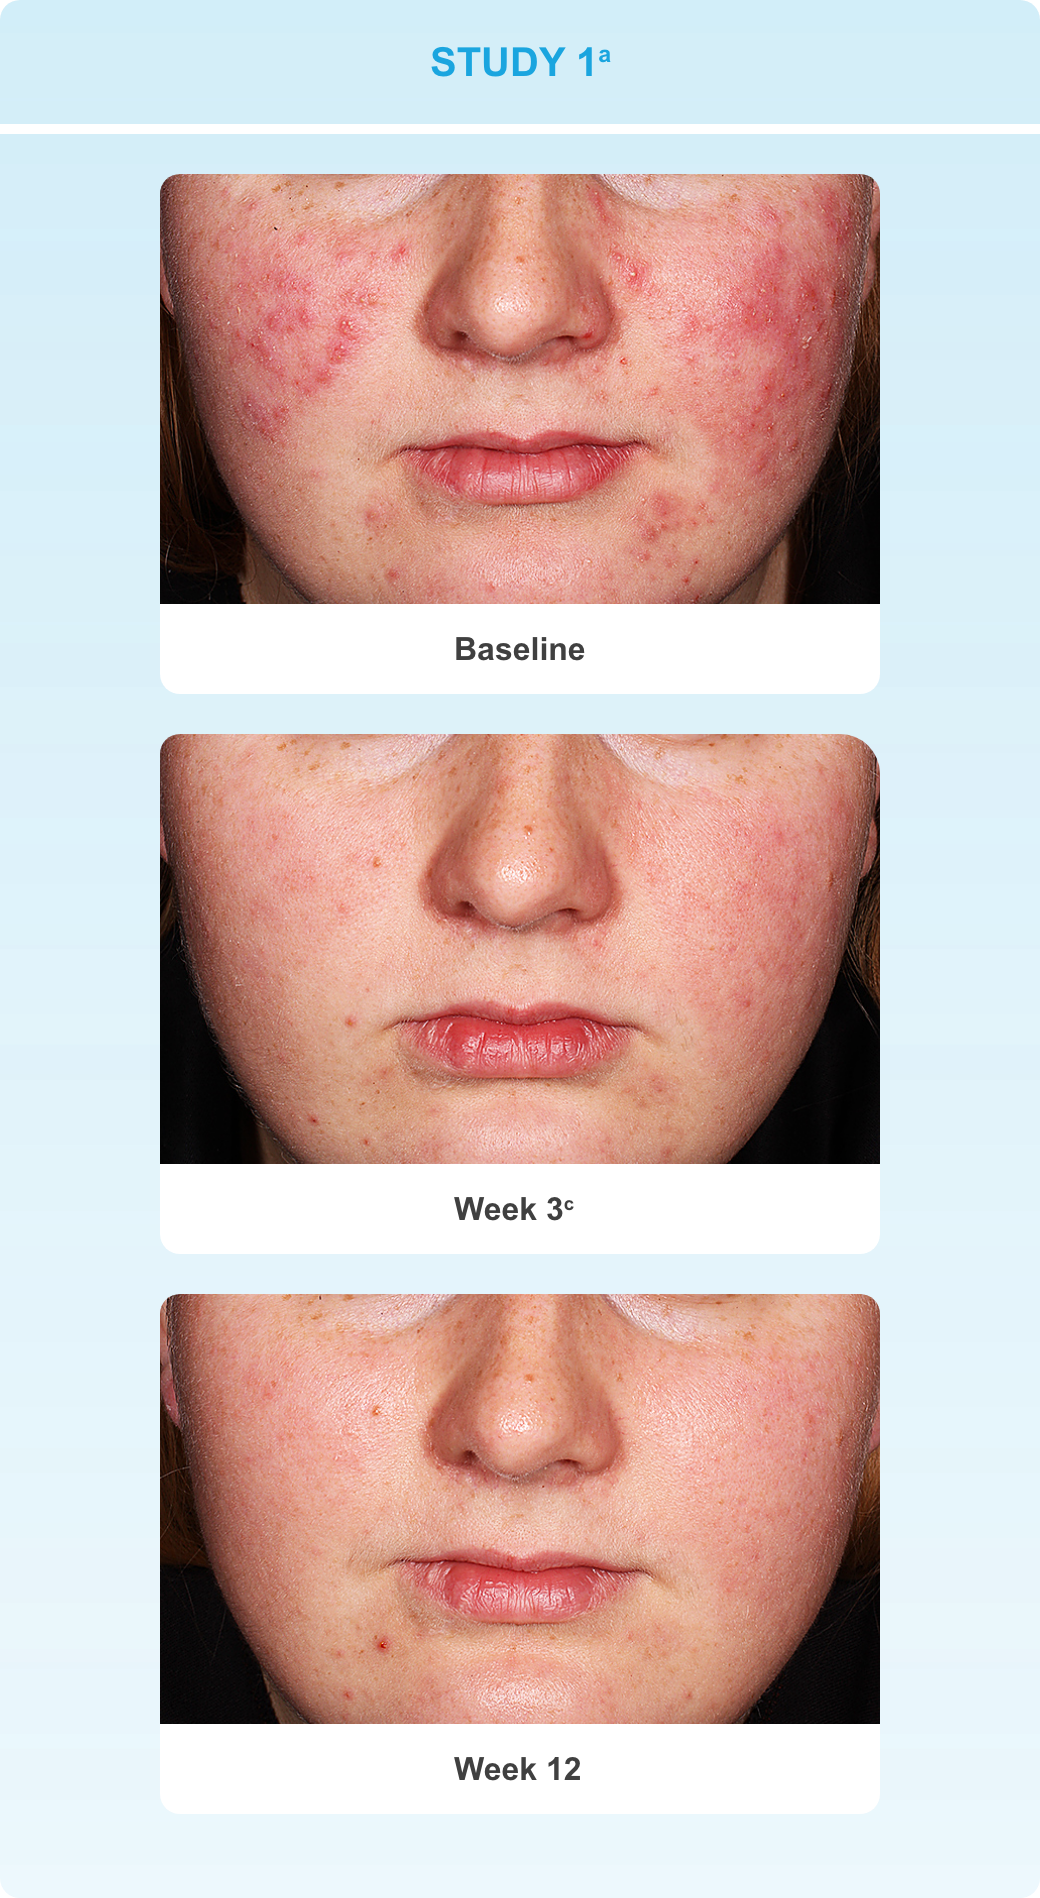 Series showing progressive reduction in lesions on a subject's face at baseline, week 3 and week 12 in study 1